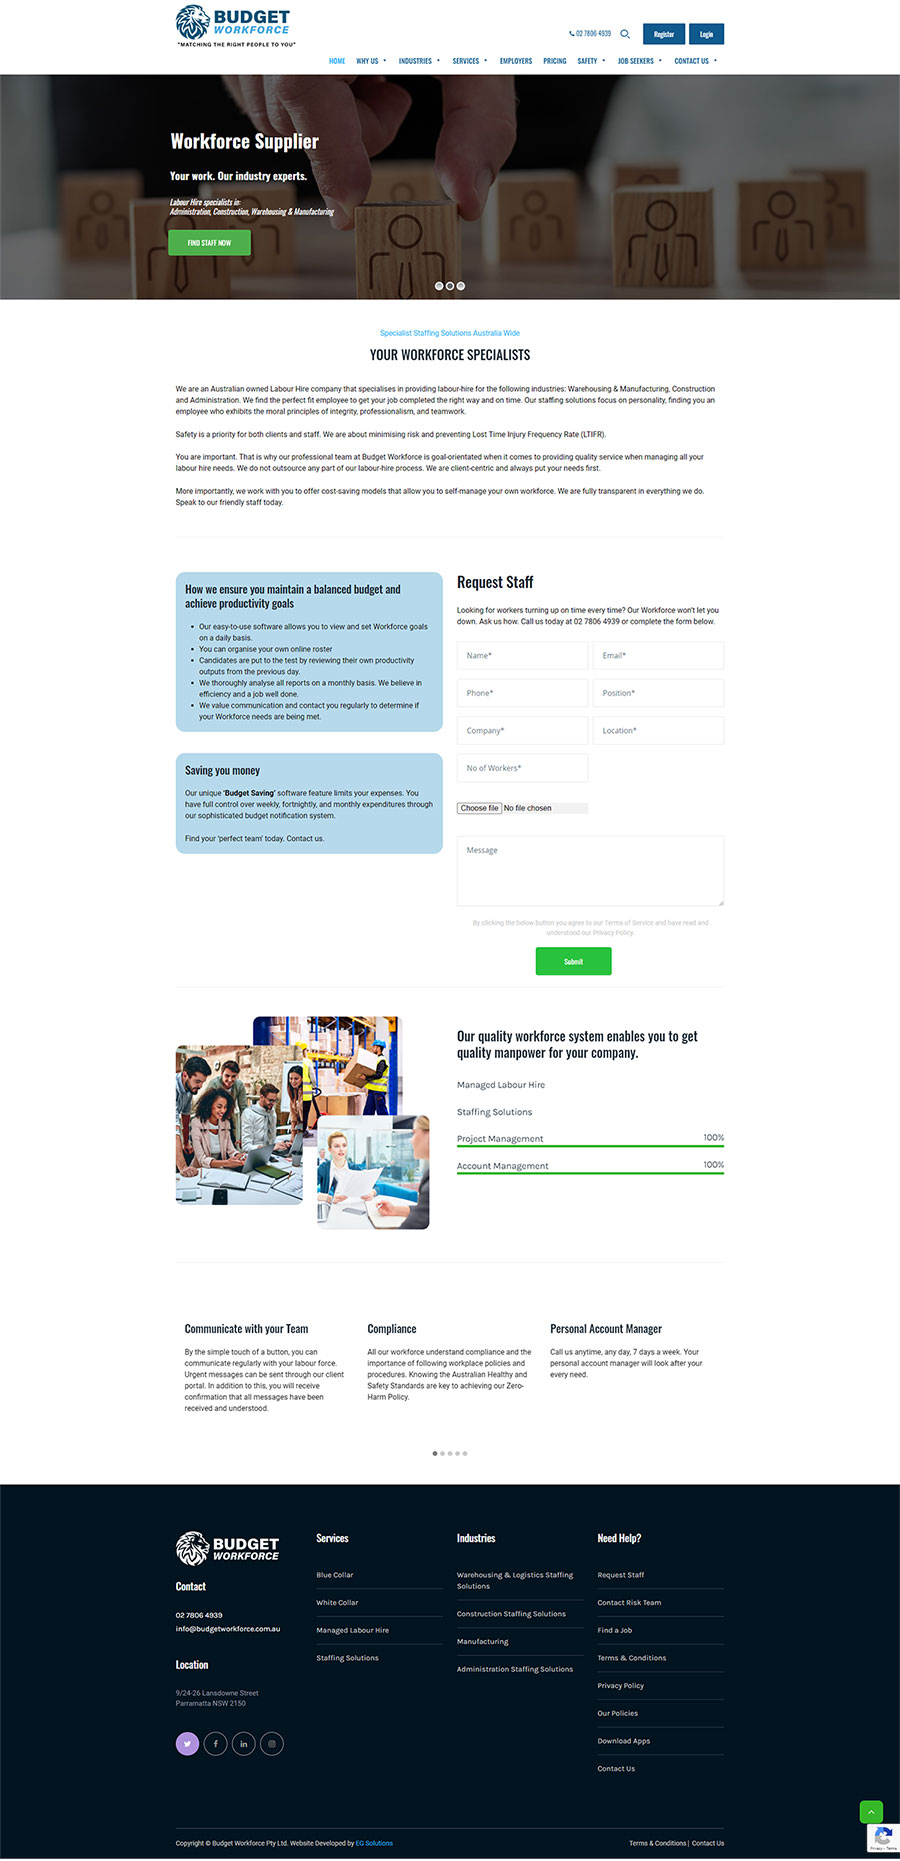 Budget Workforce - Home page